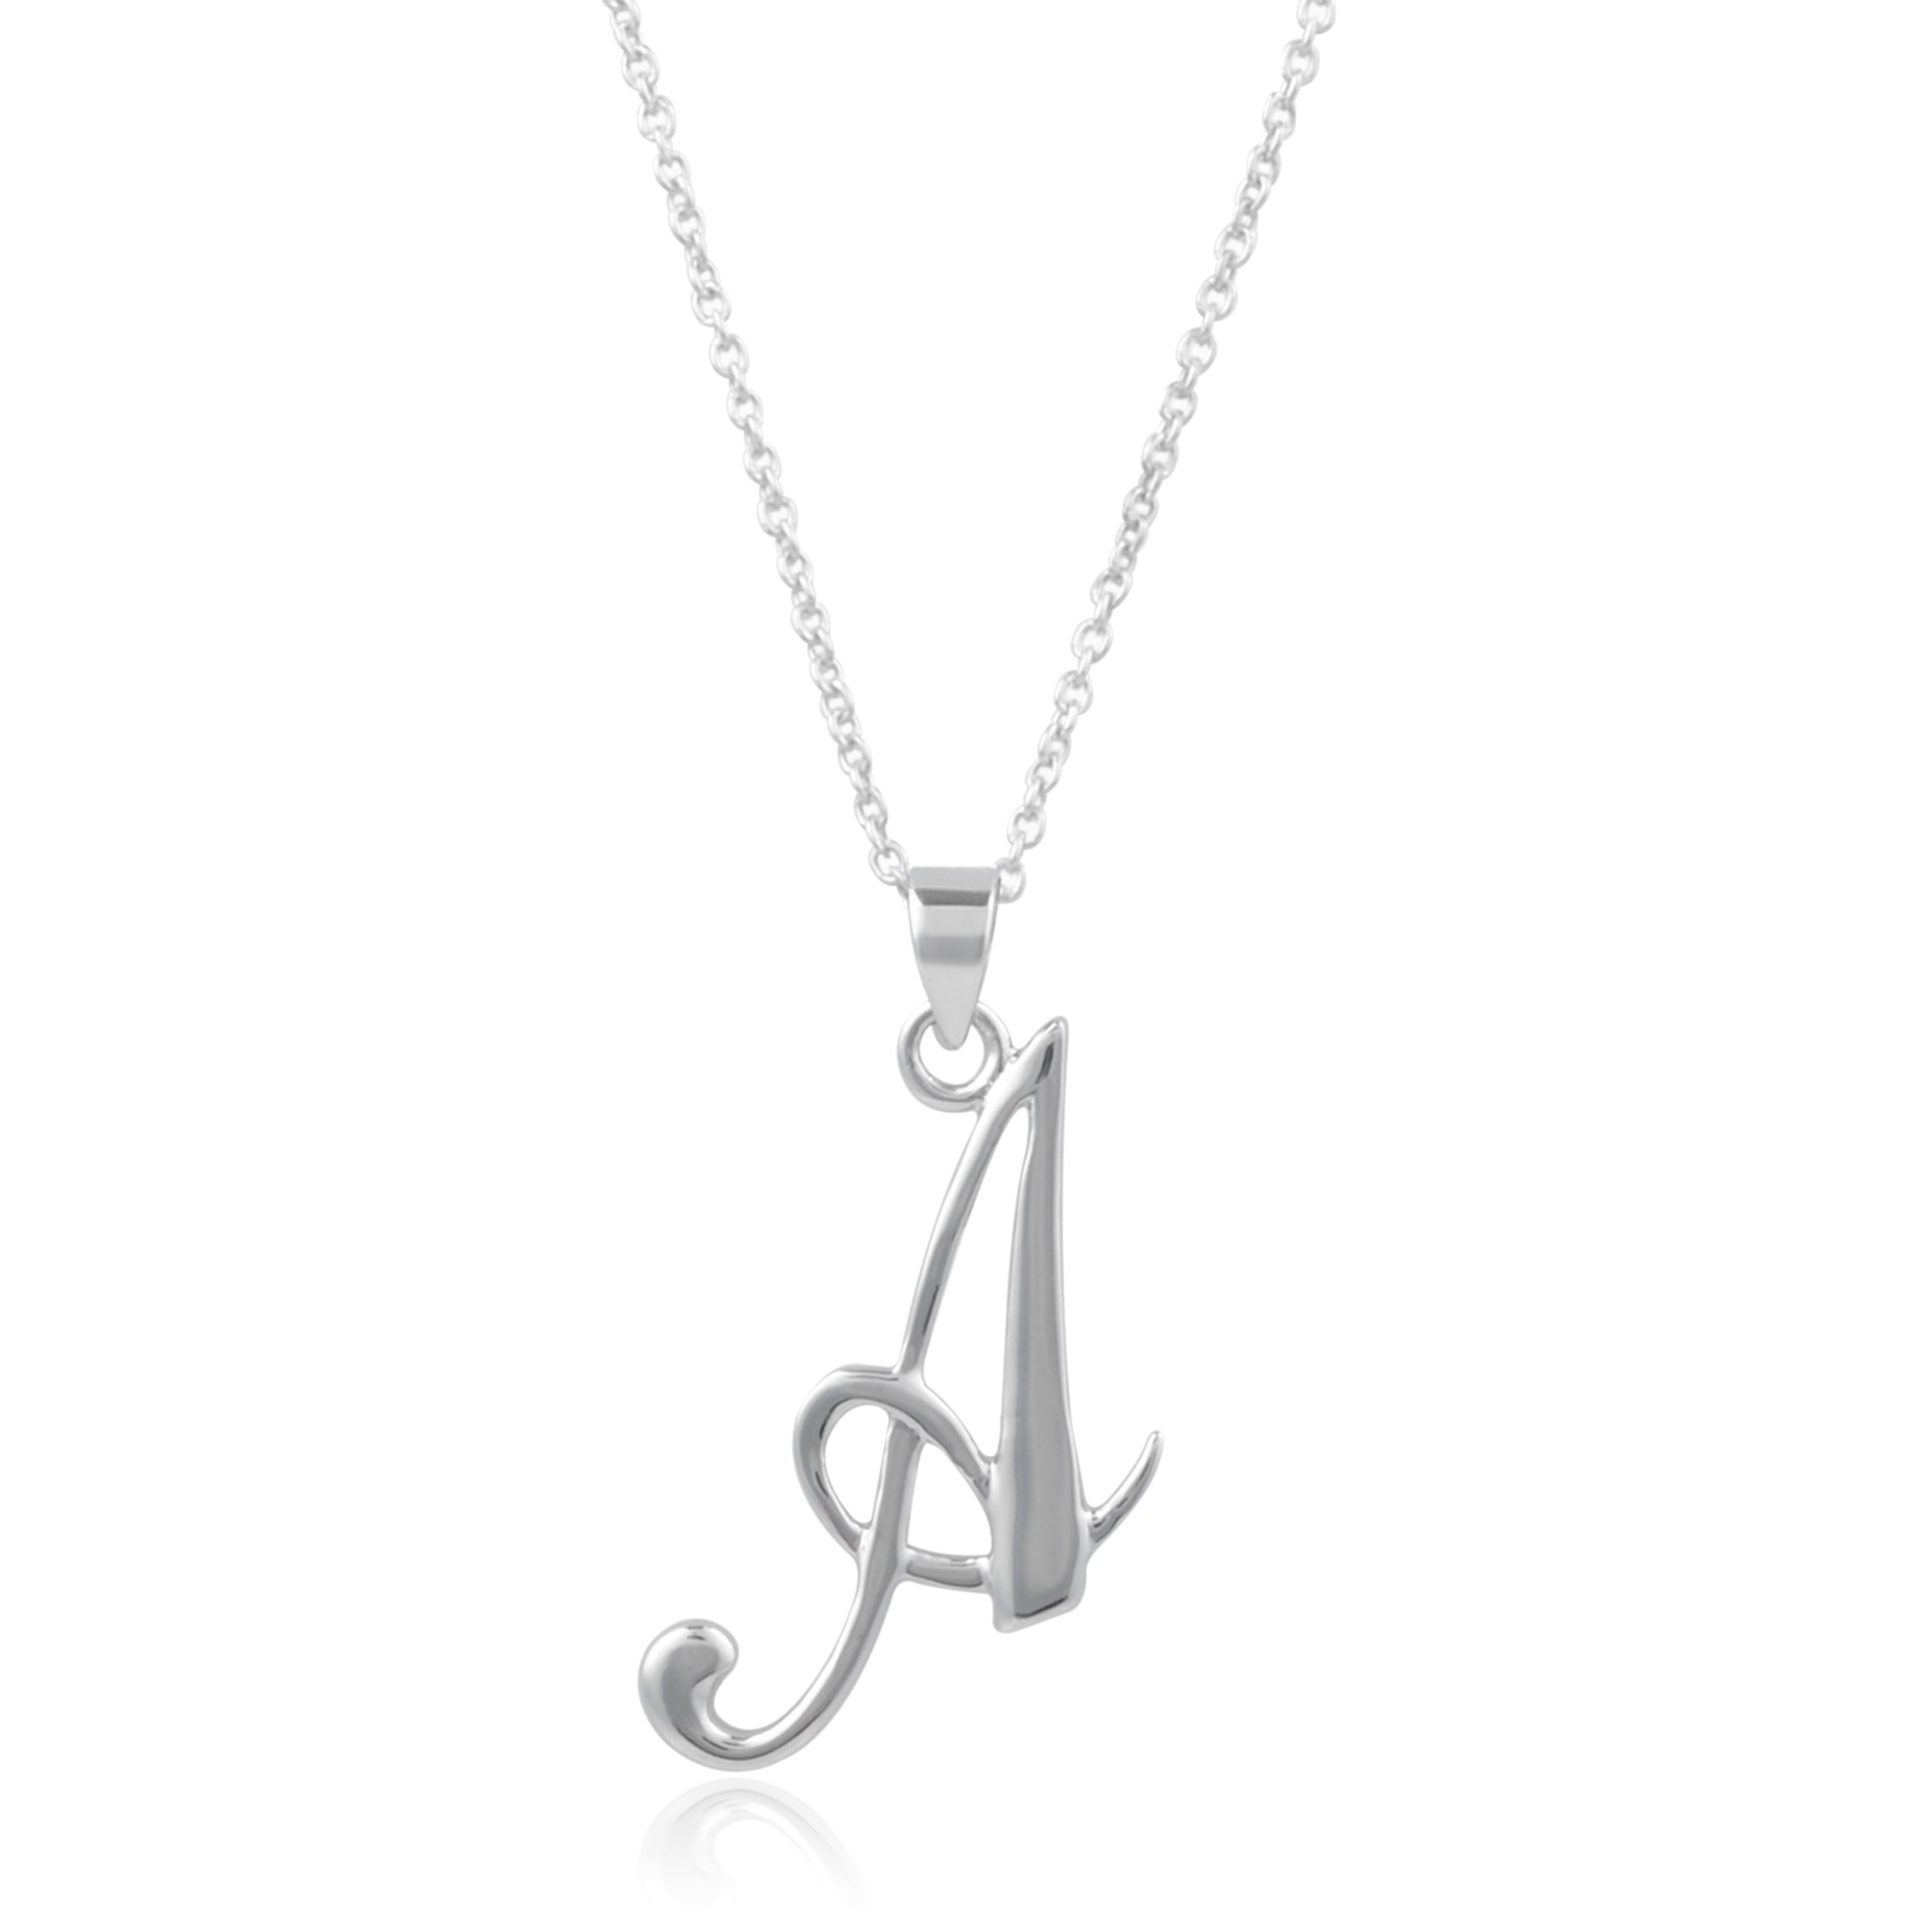 product on chain necklace g letter silver quot pendant original over rhodium cable sterling script love